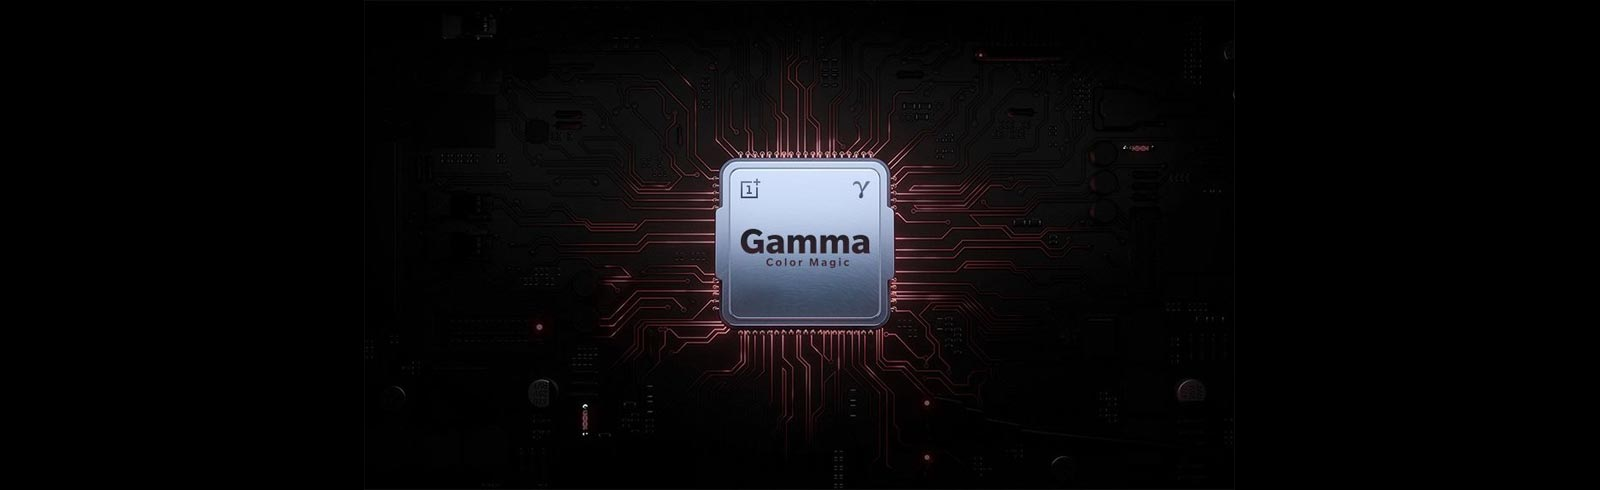 OnePlus TV will have a Gamma Color Magic dedicated chip